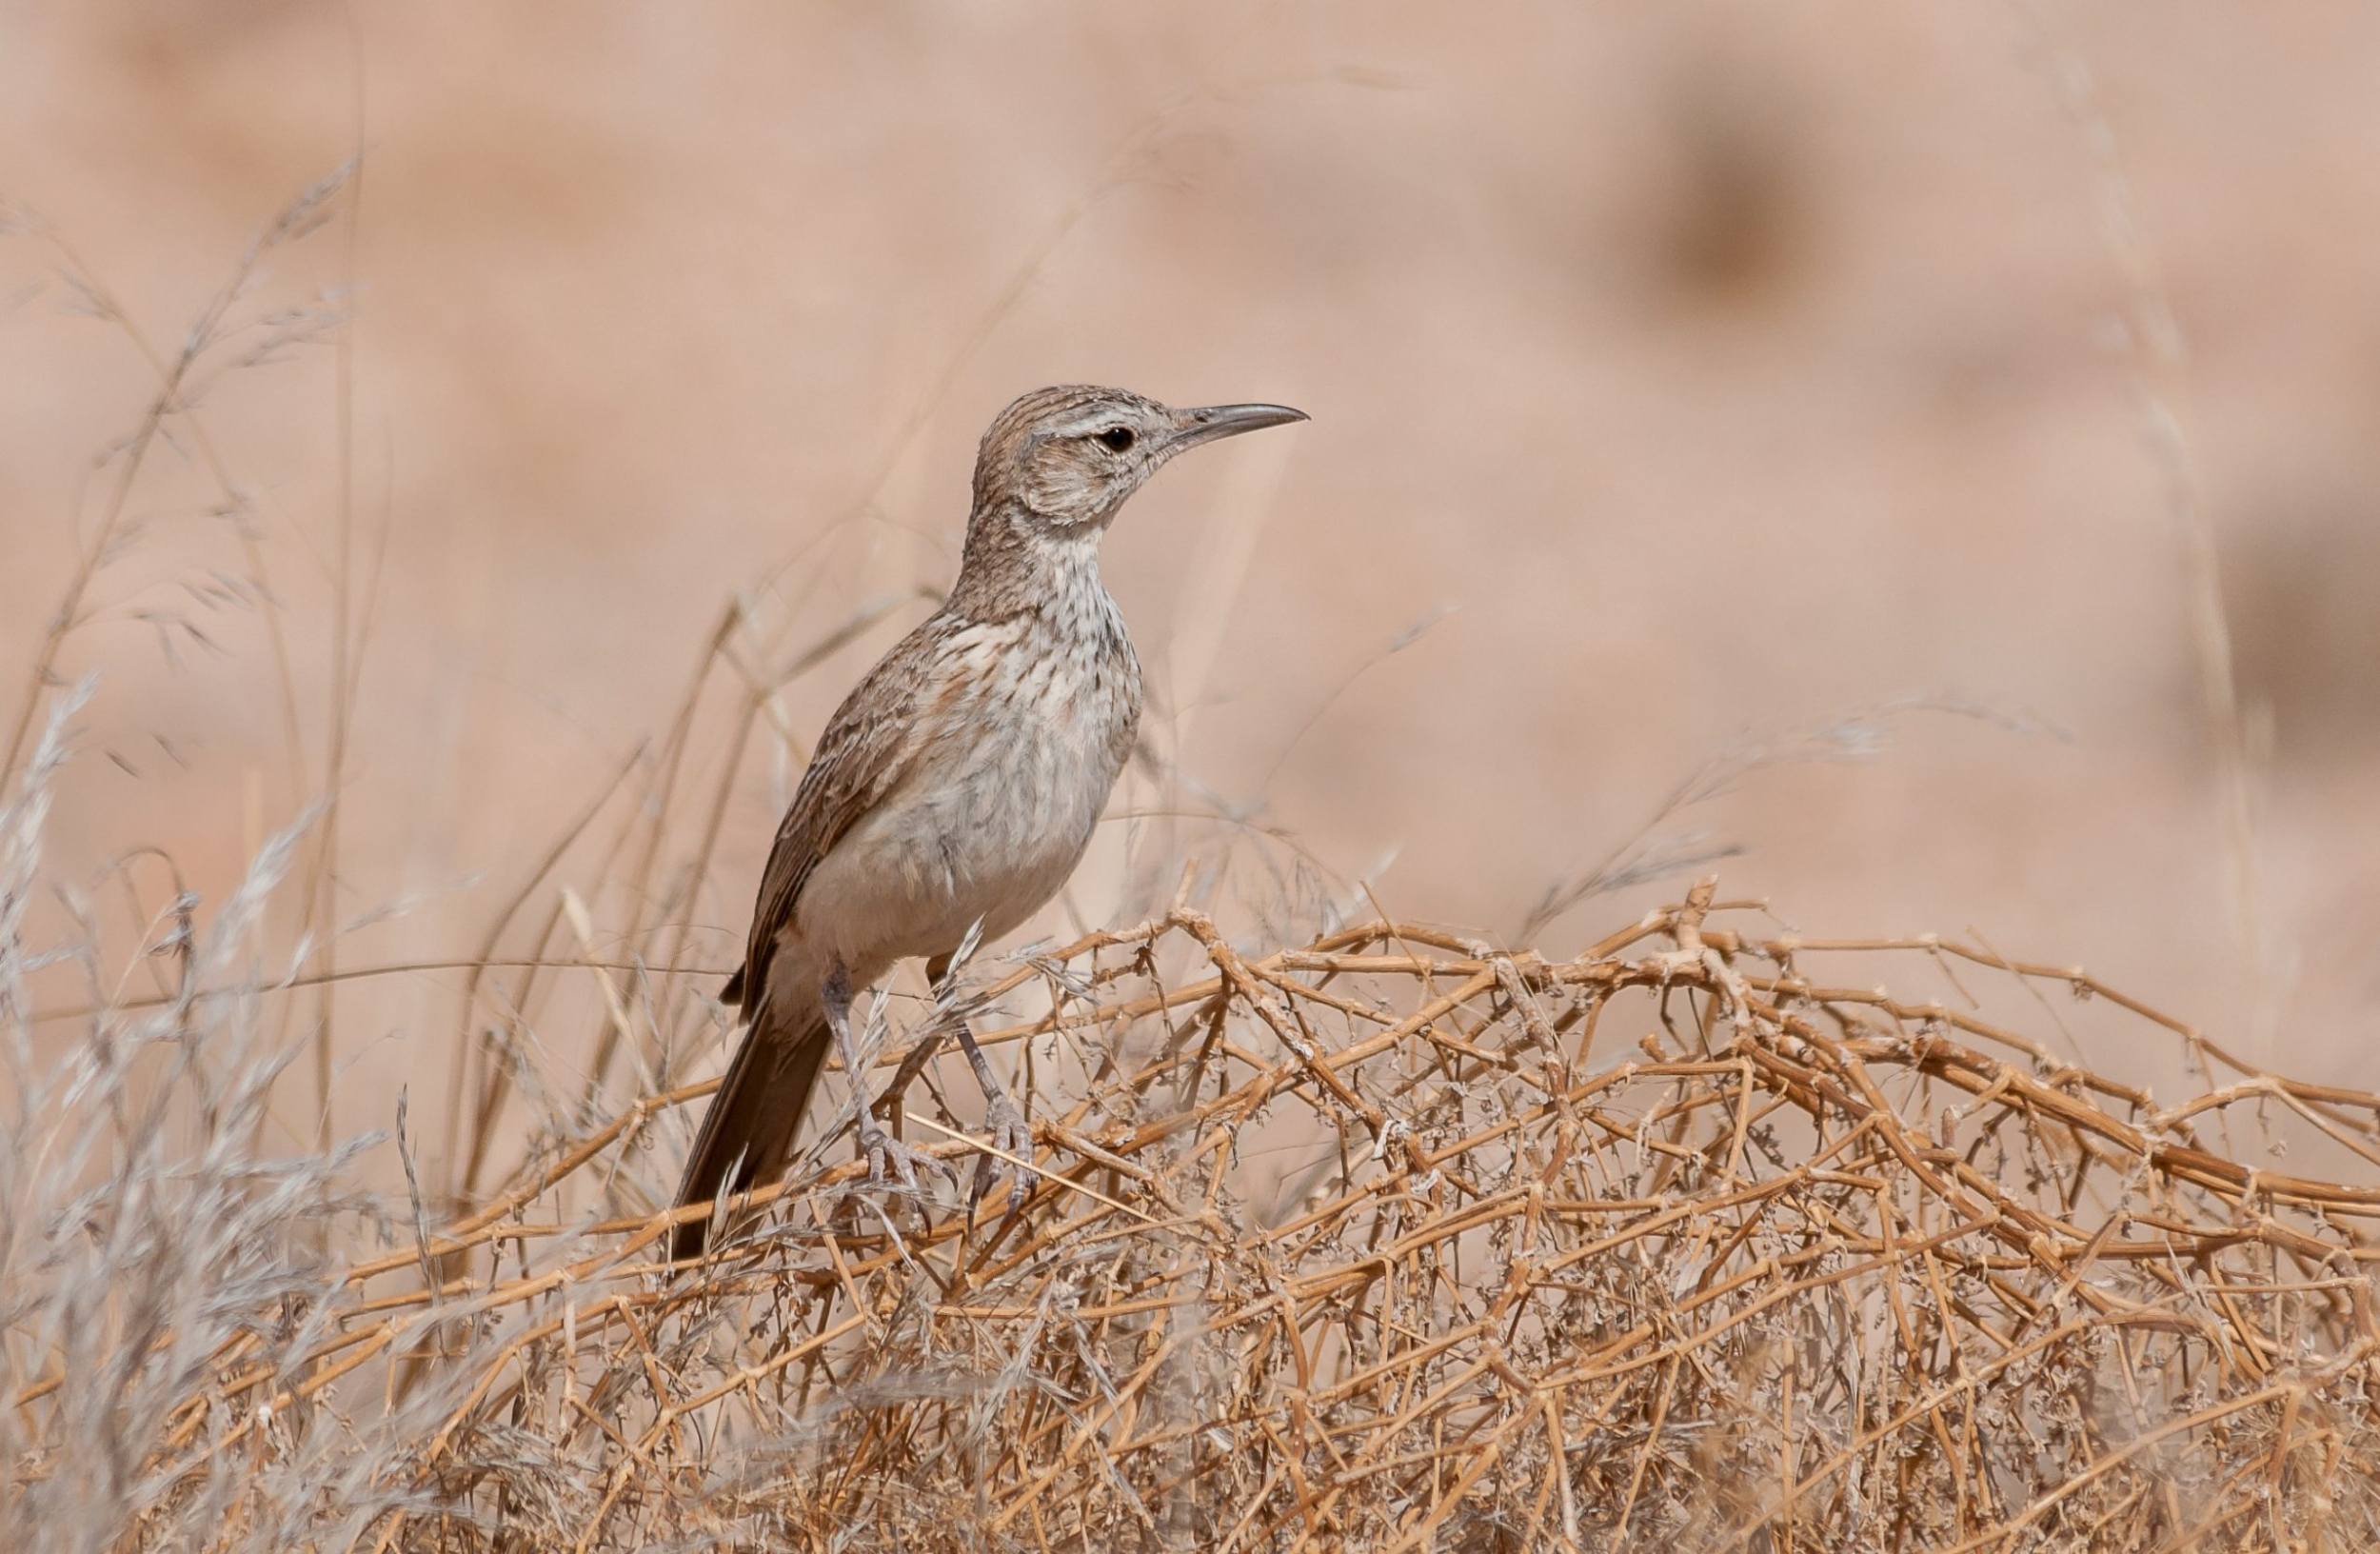 Our day tour to Brandberg offers the chance to see many desert-adapted mammals, reptiles, plants, insects and birds. It also offers wonderful scenery and great photographic opportunities. This Benguela Long-billed Lark is one of many bird species that can be seen on this tour.